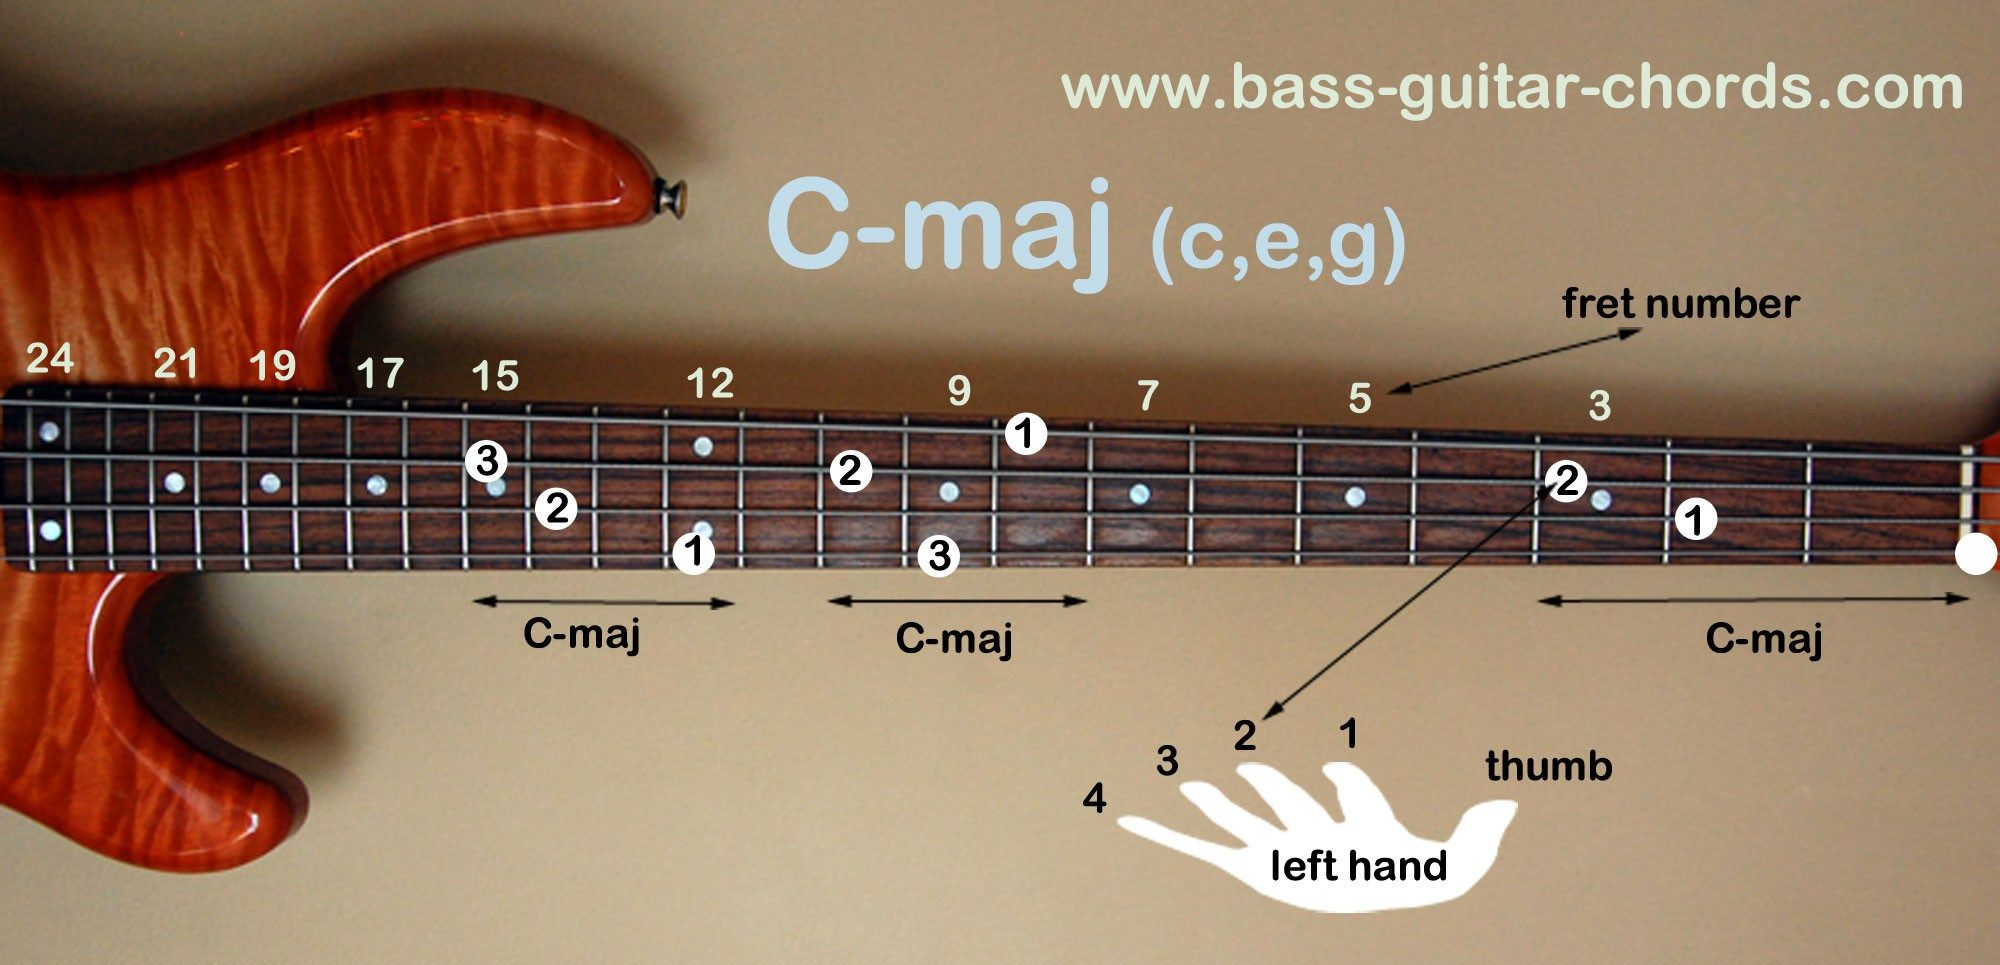 Bass Guitar Chords Innovative School Of Bass Playing Bass